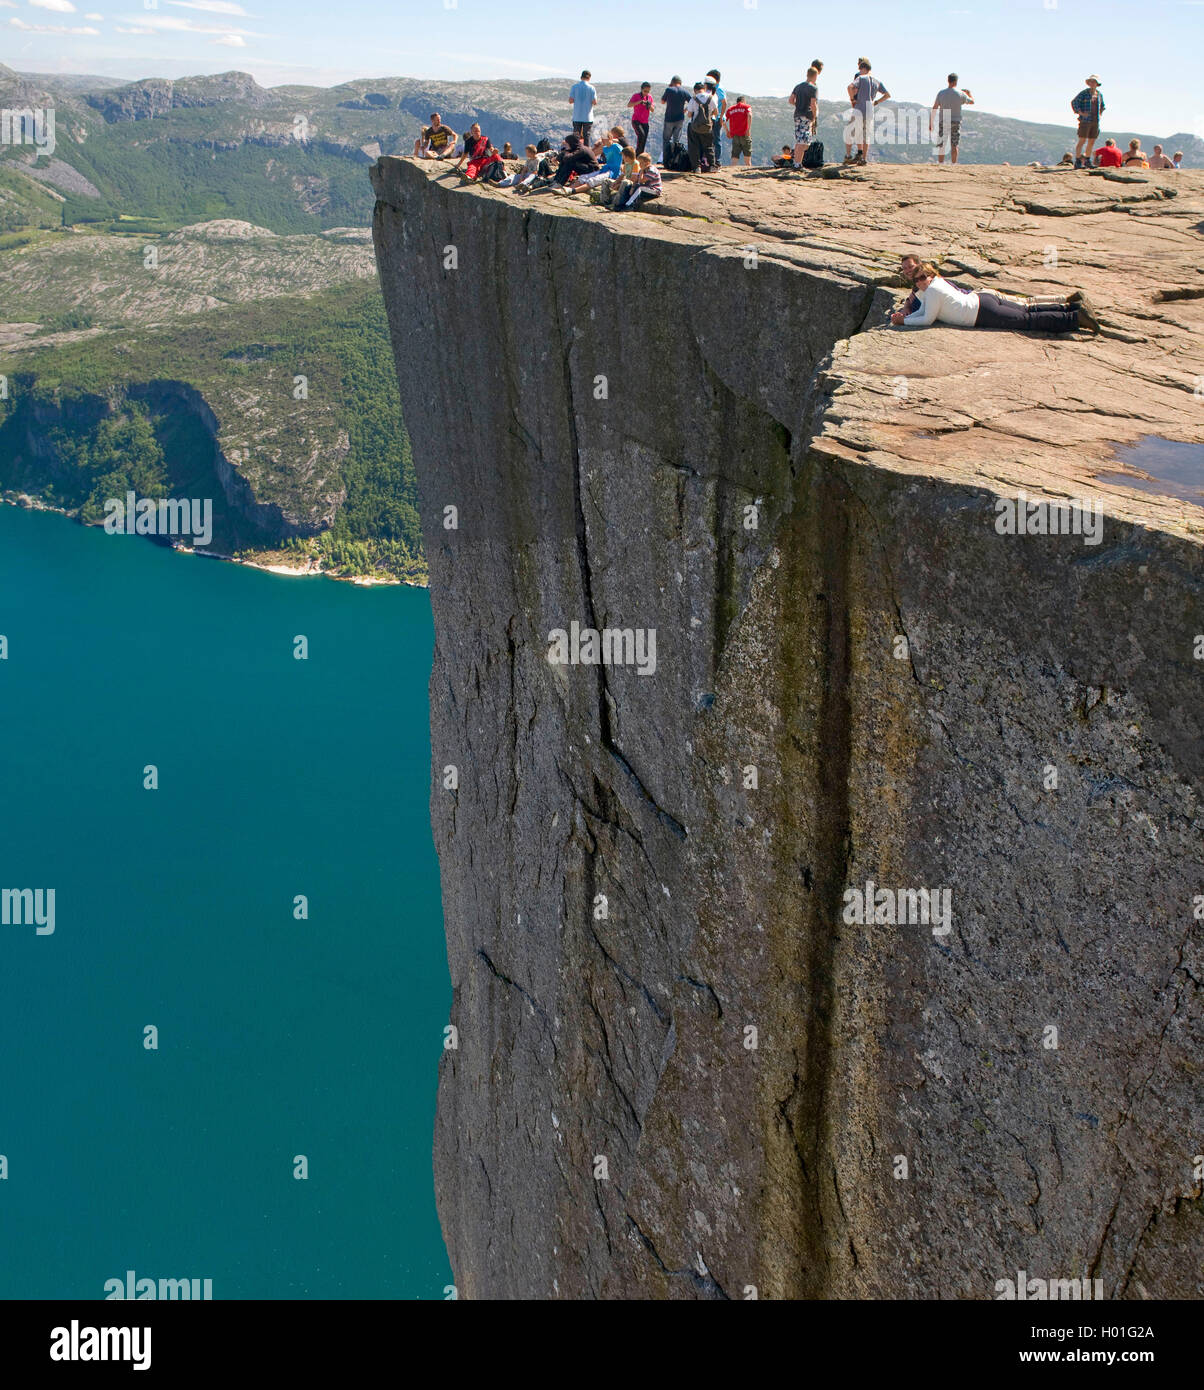 Menschen auf dem Felsplateau Preikestolen, Norwegen, Rogaland, Ryfylke, Lysefjord | people enjoying the steep cliff Stock Photo